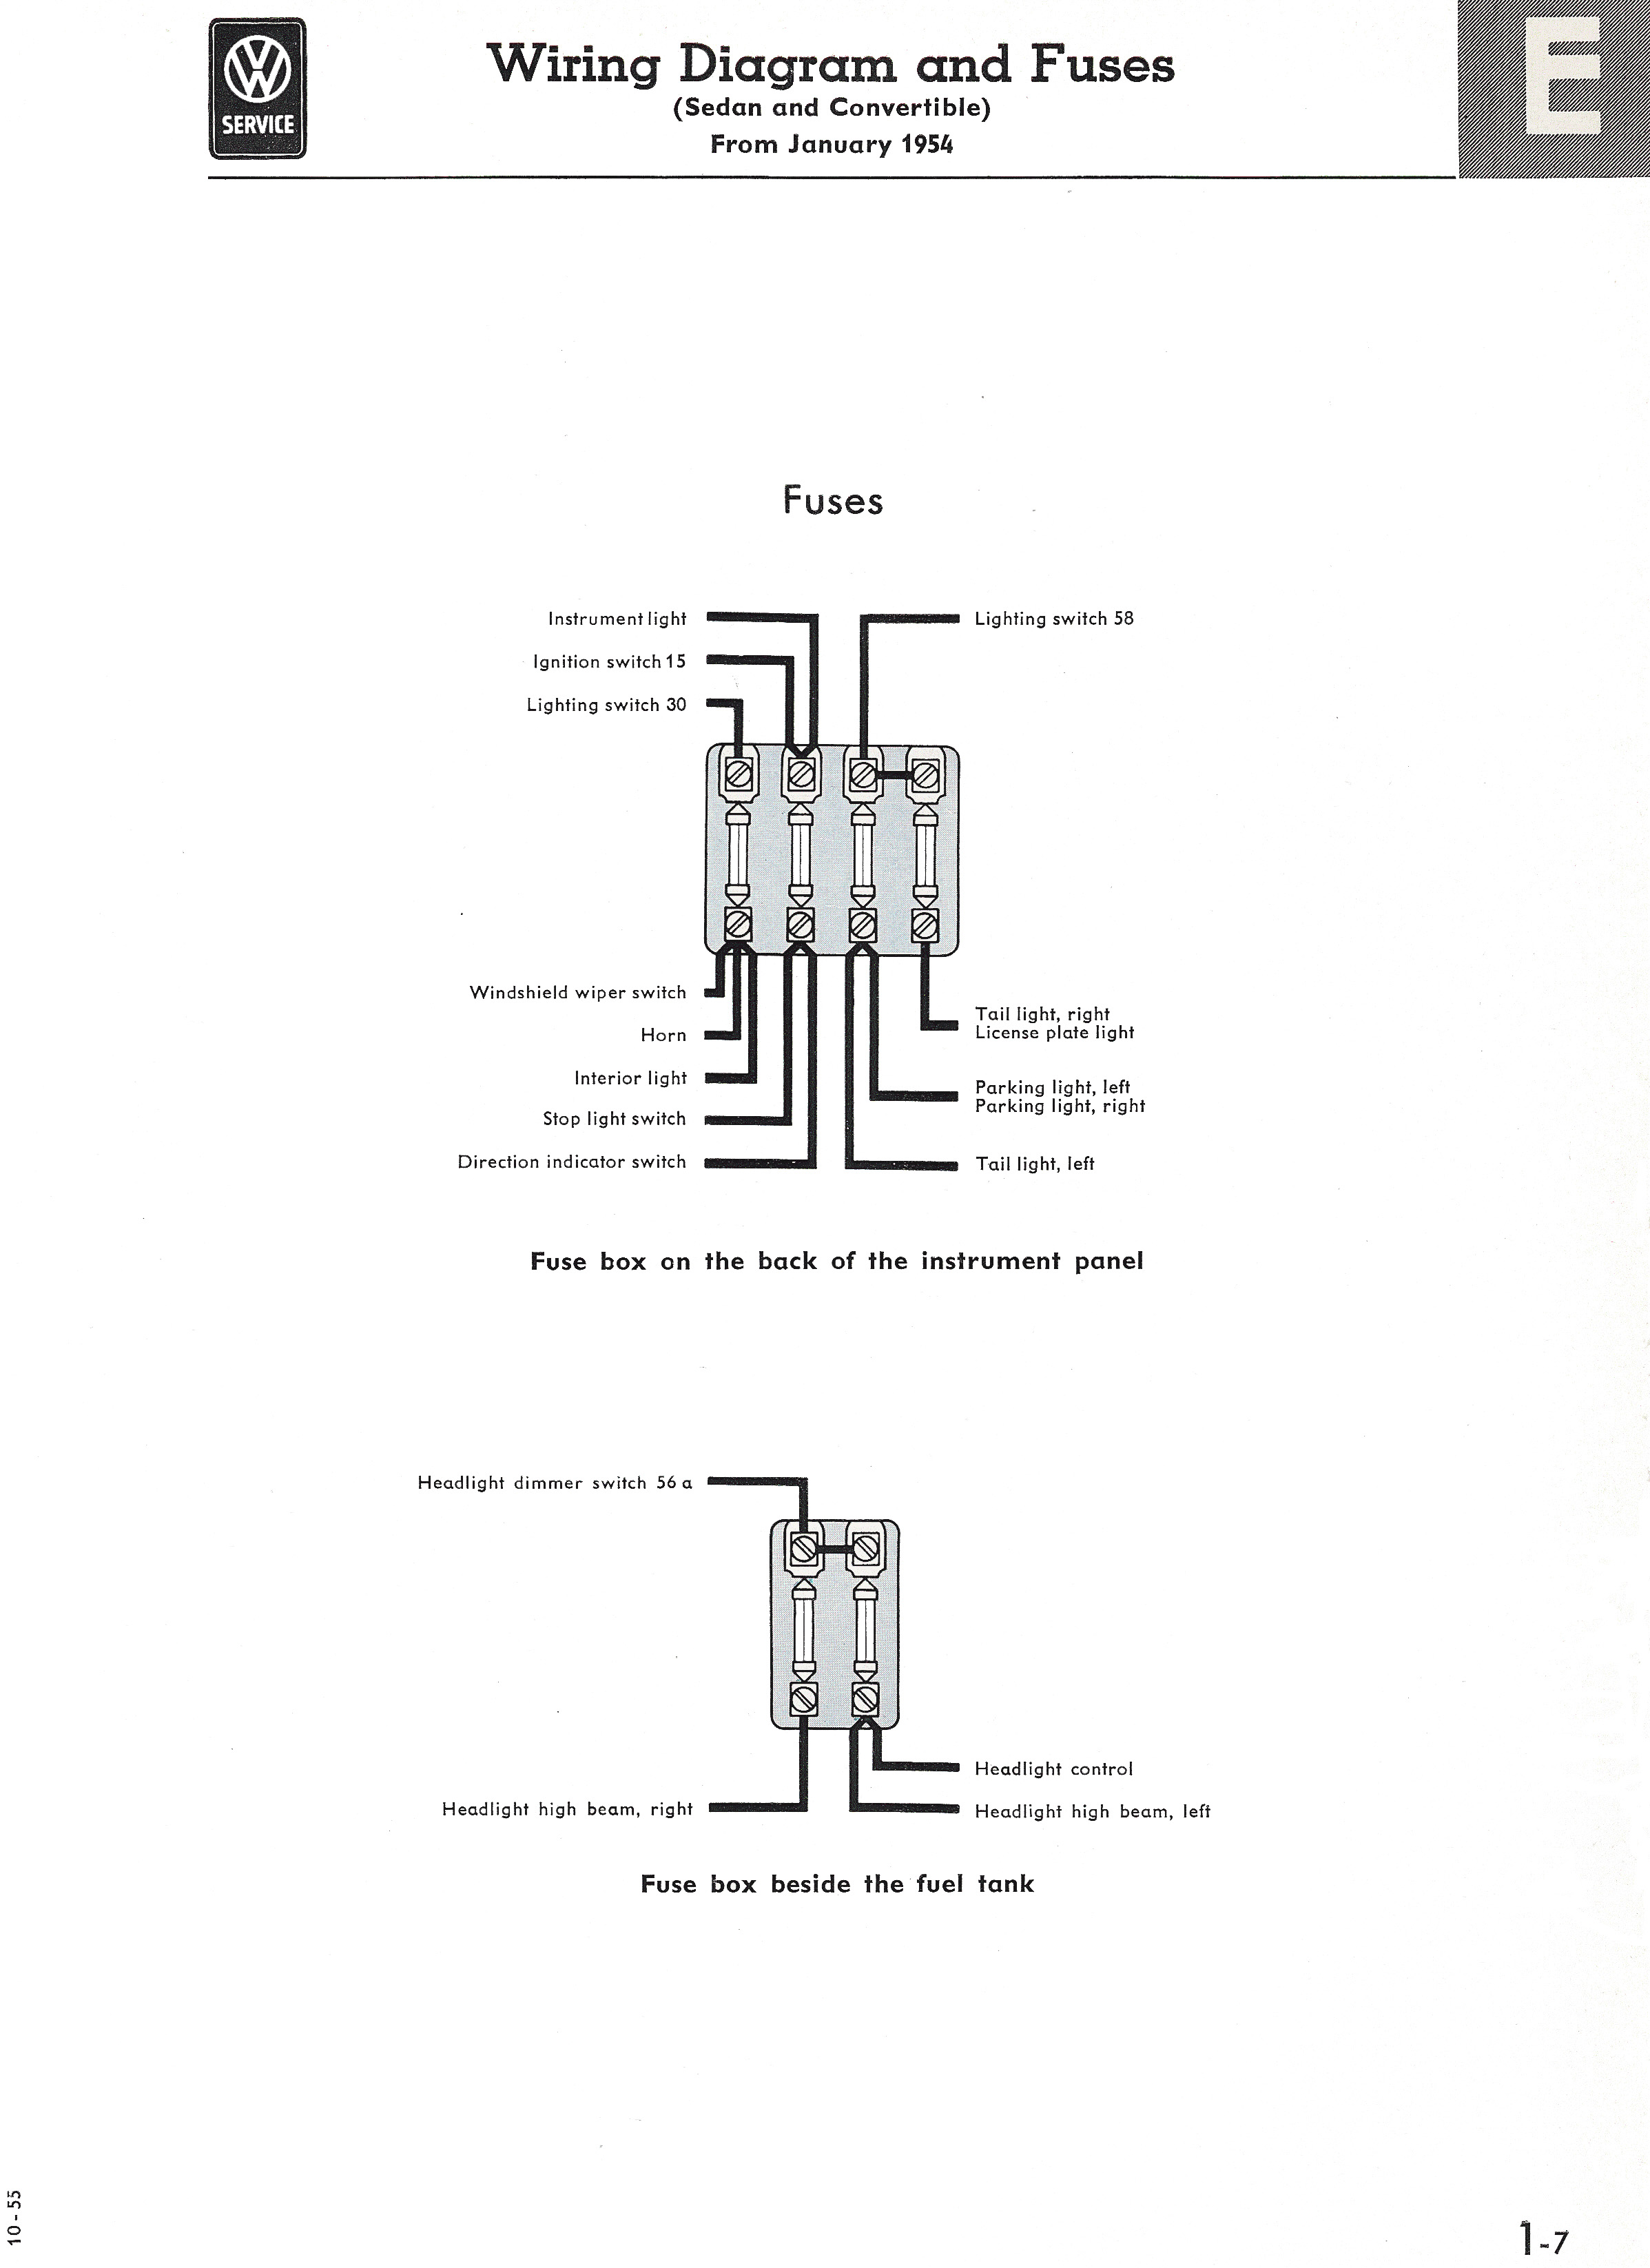 Type 1 Wiring Diagrams Fuse Box For Cars